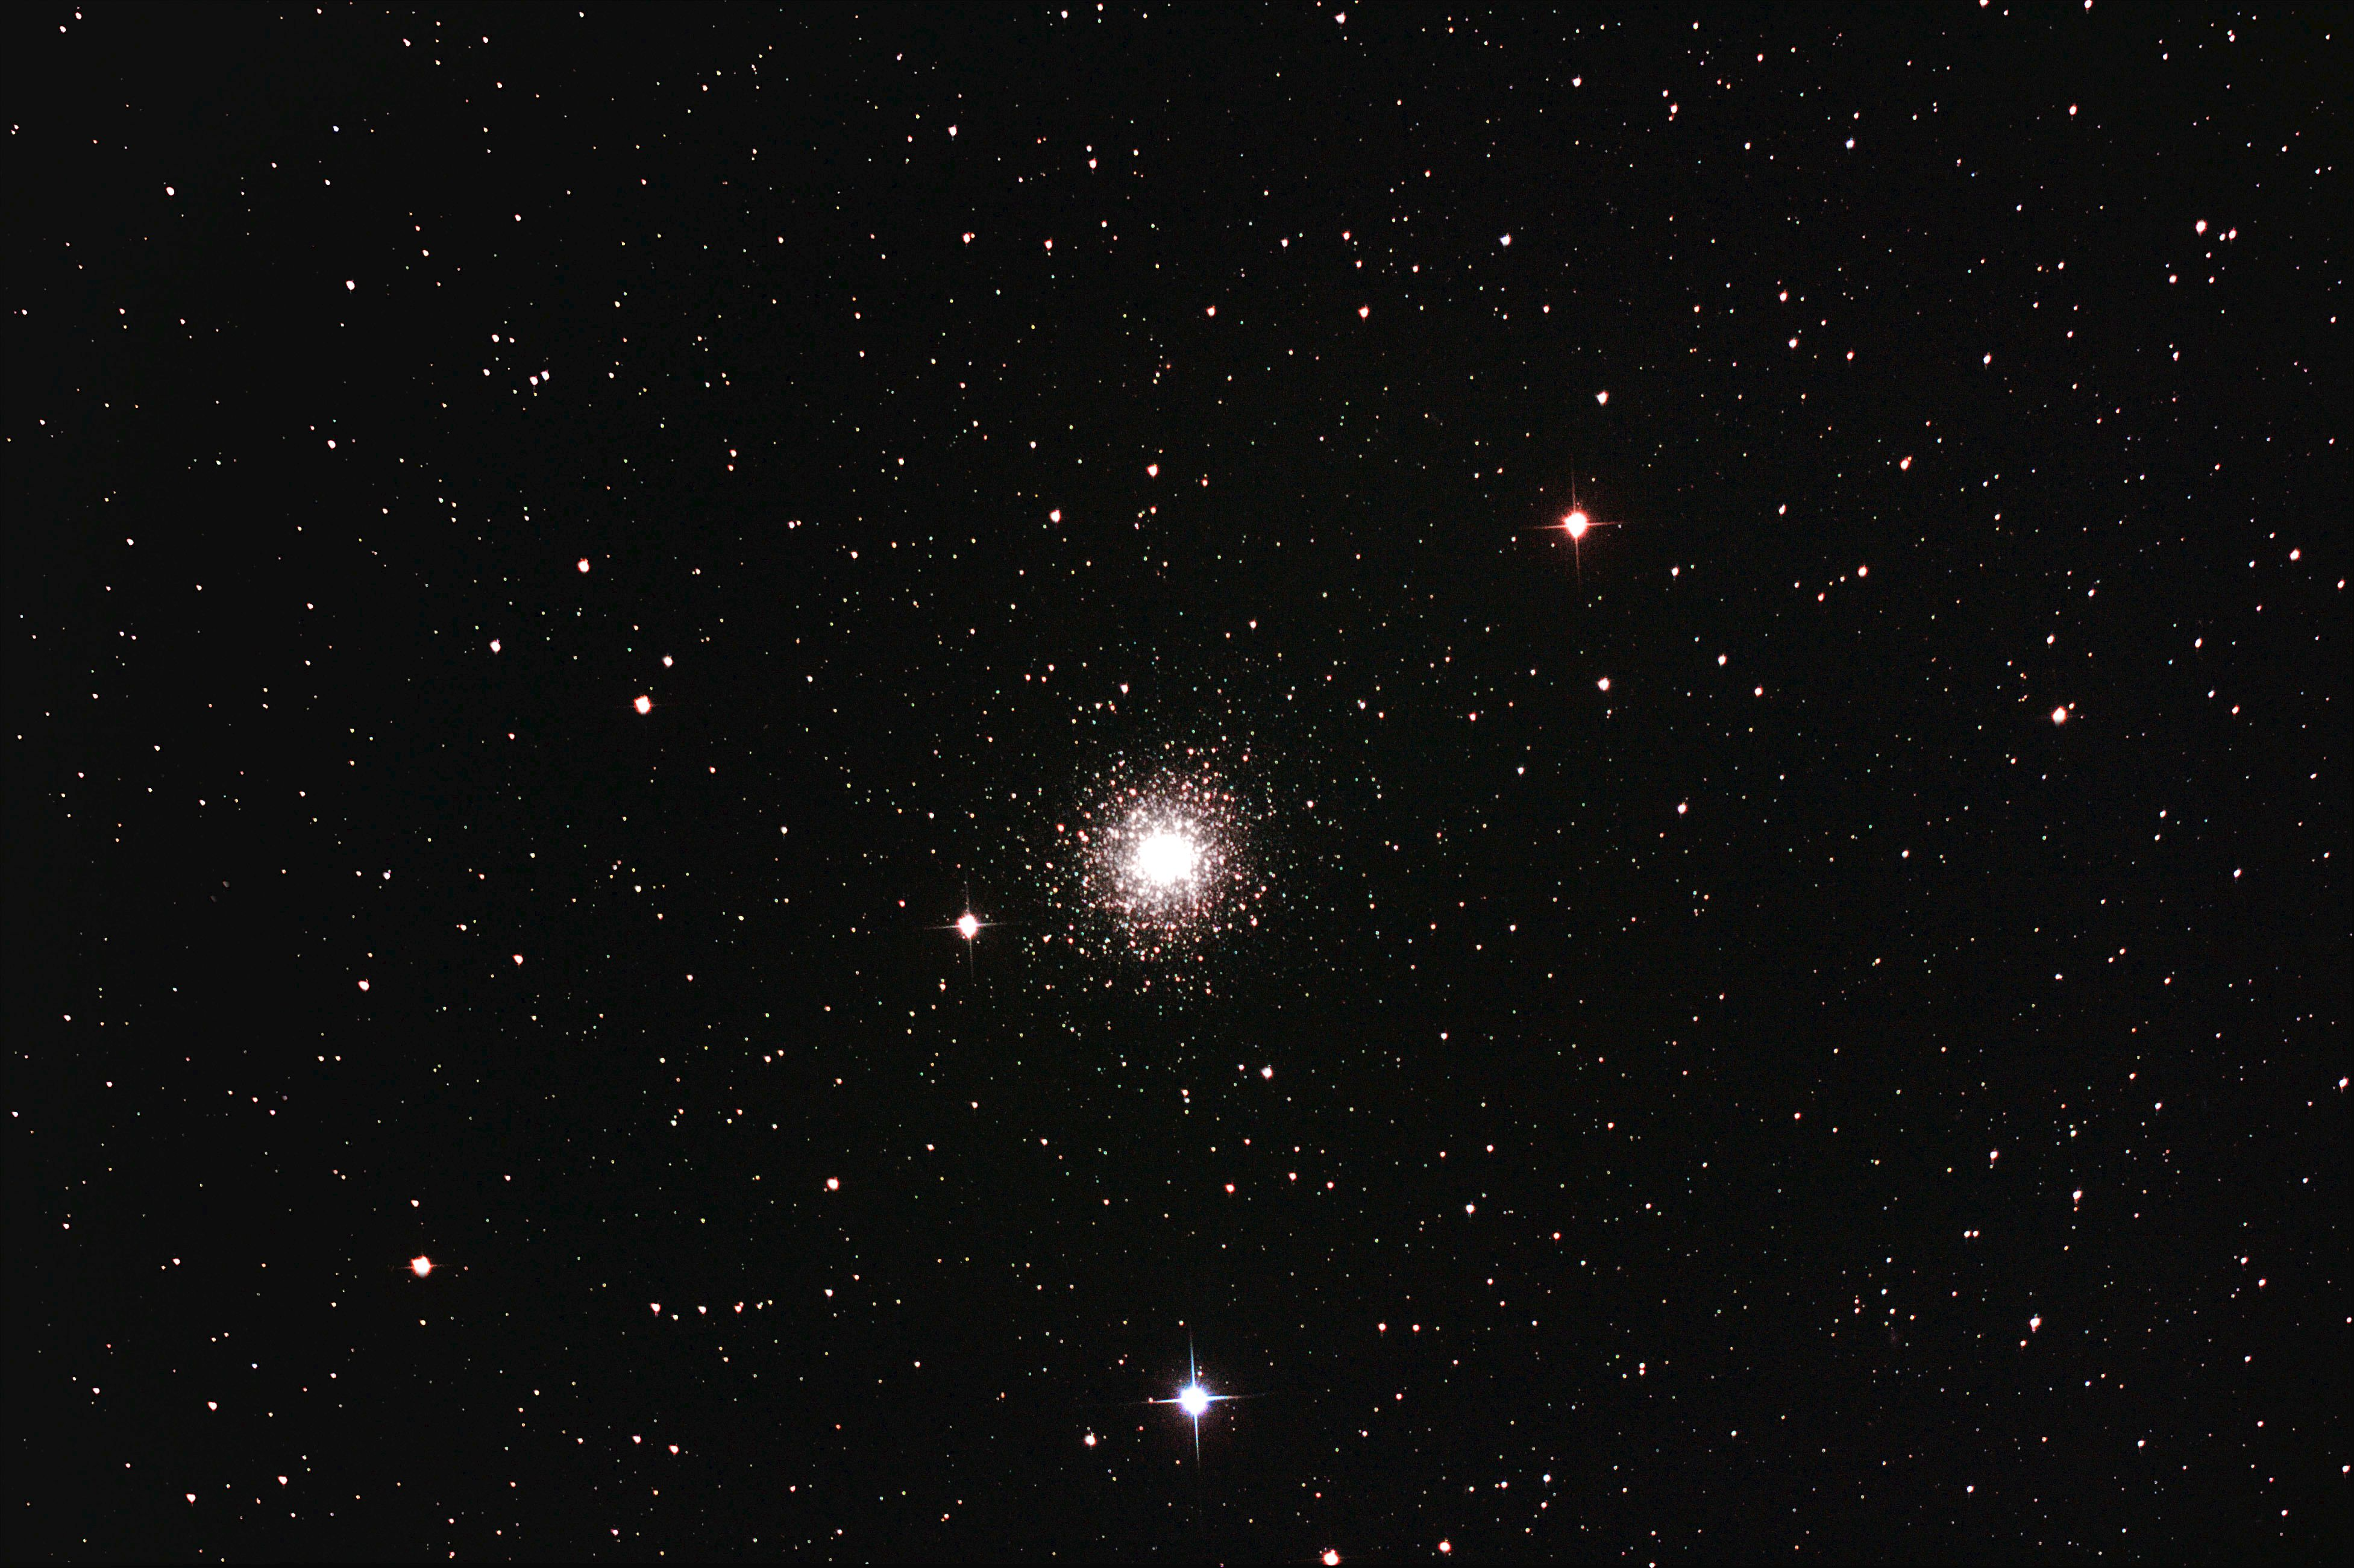 Messier 72, a celestial city previously mentioned but we take Messier